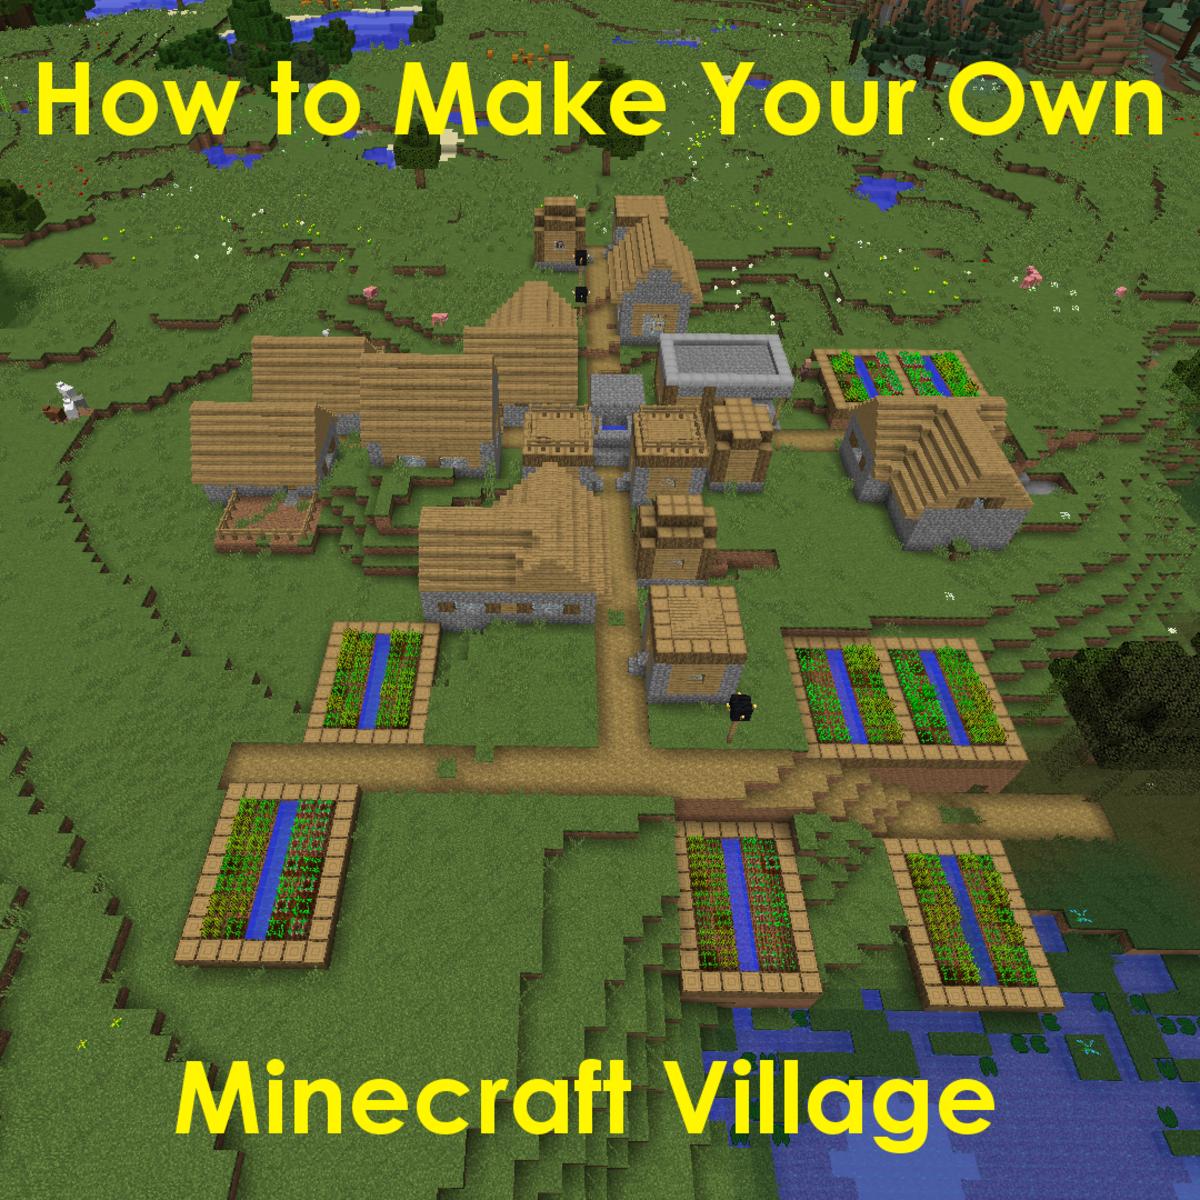 How to Make Your Own Village in